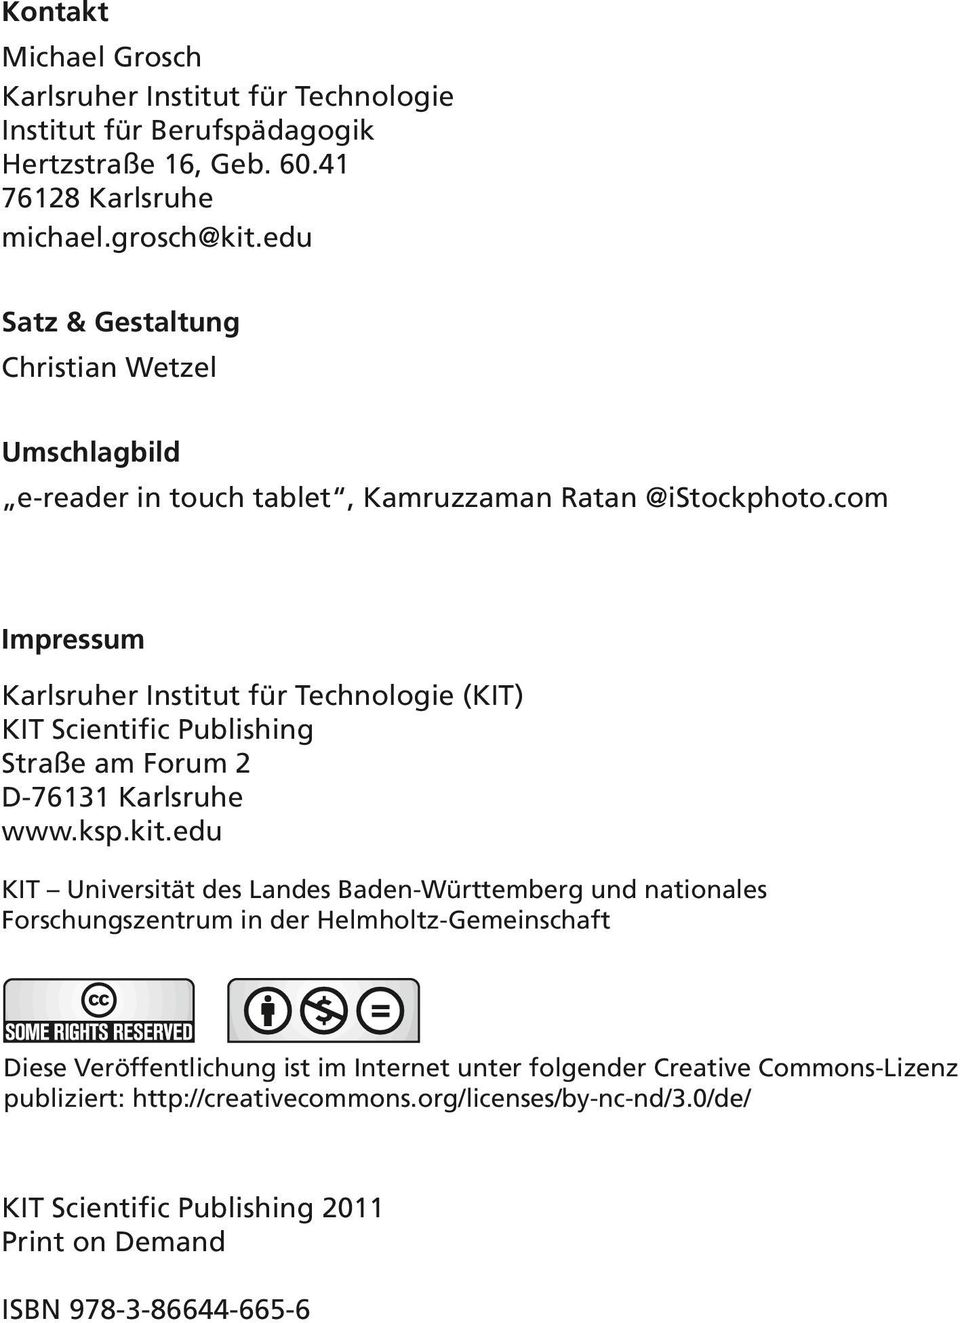 com Impressum Karlsruher Institut für Technologie (KIT) KIT Scientific Publishing Straße am Forum 2 D-76131 Karlsruhe www.ksp.kit.